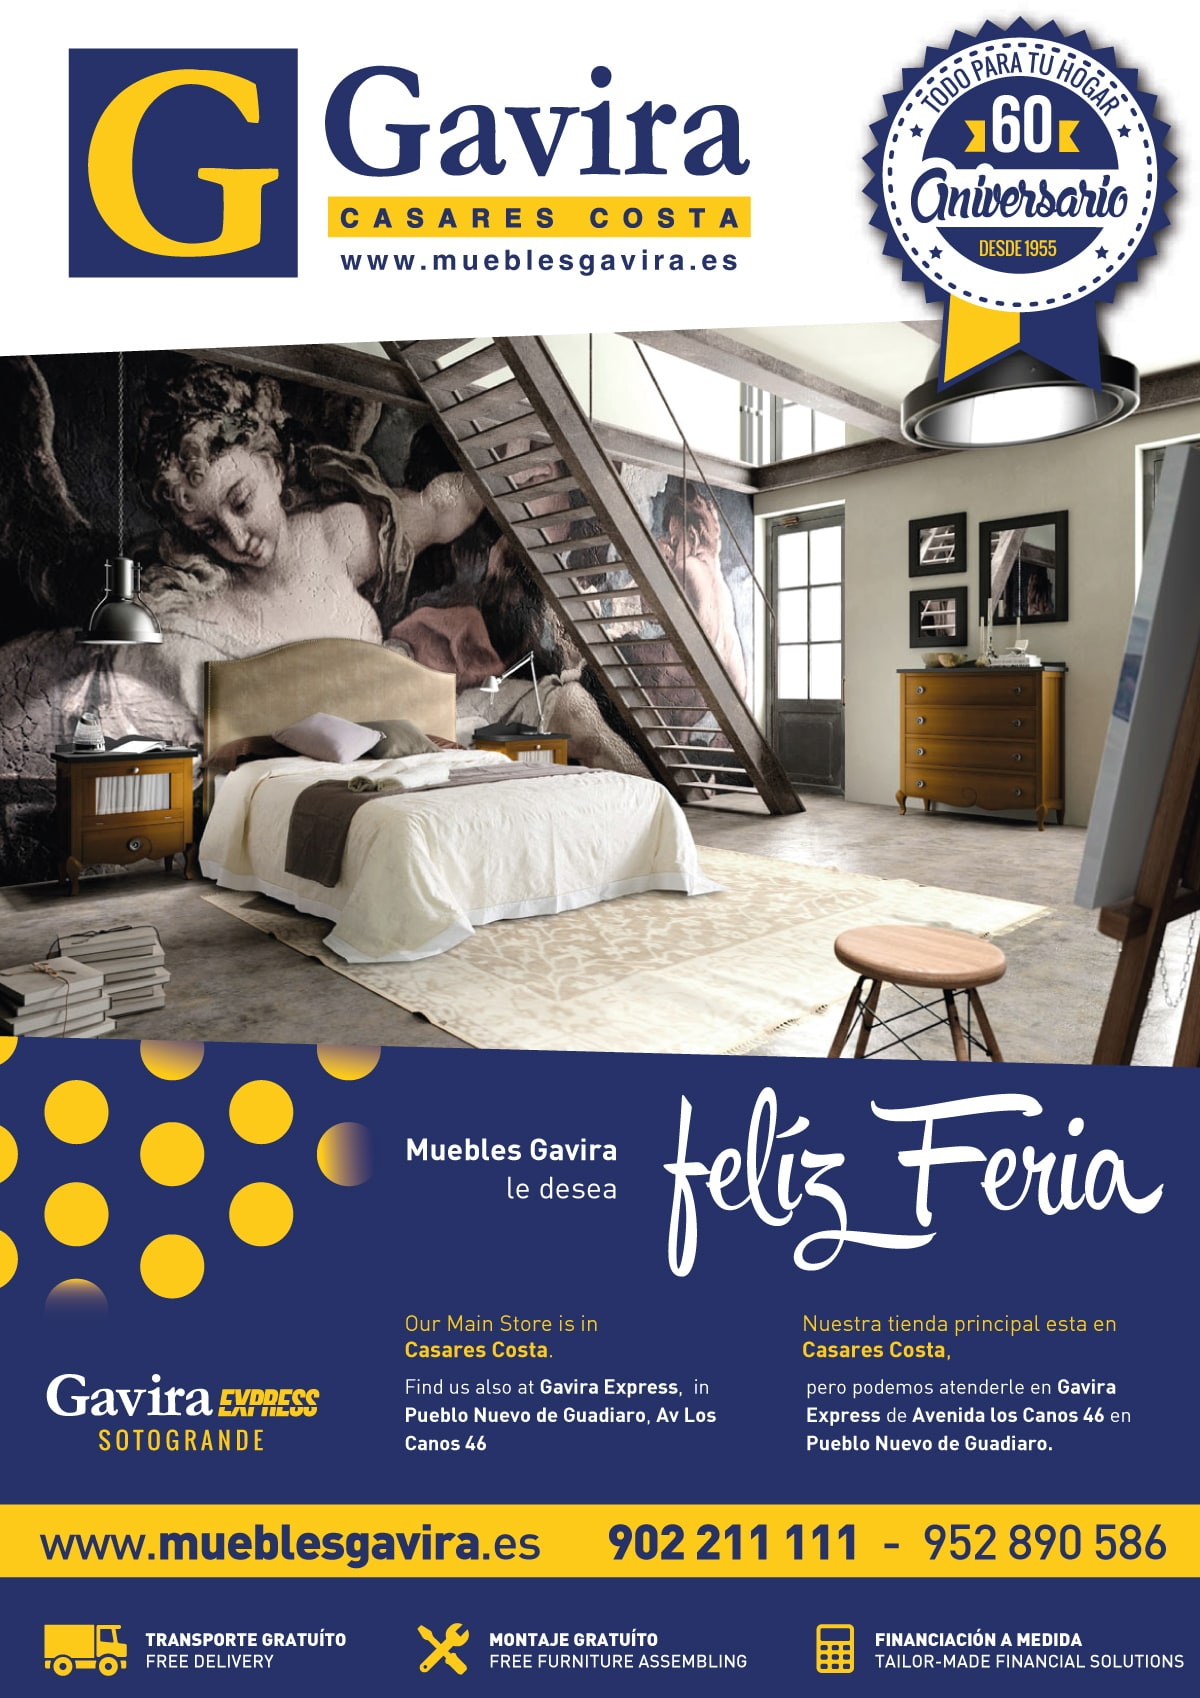 Magazine advertisement design for Muebles Gavira